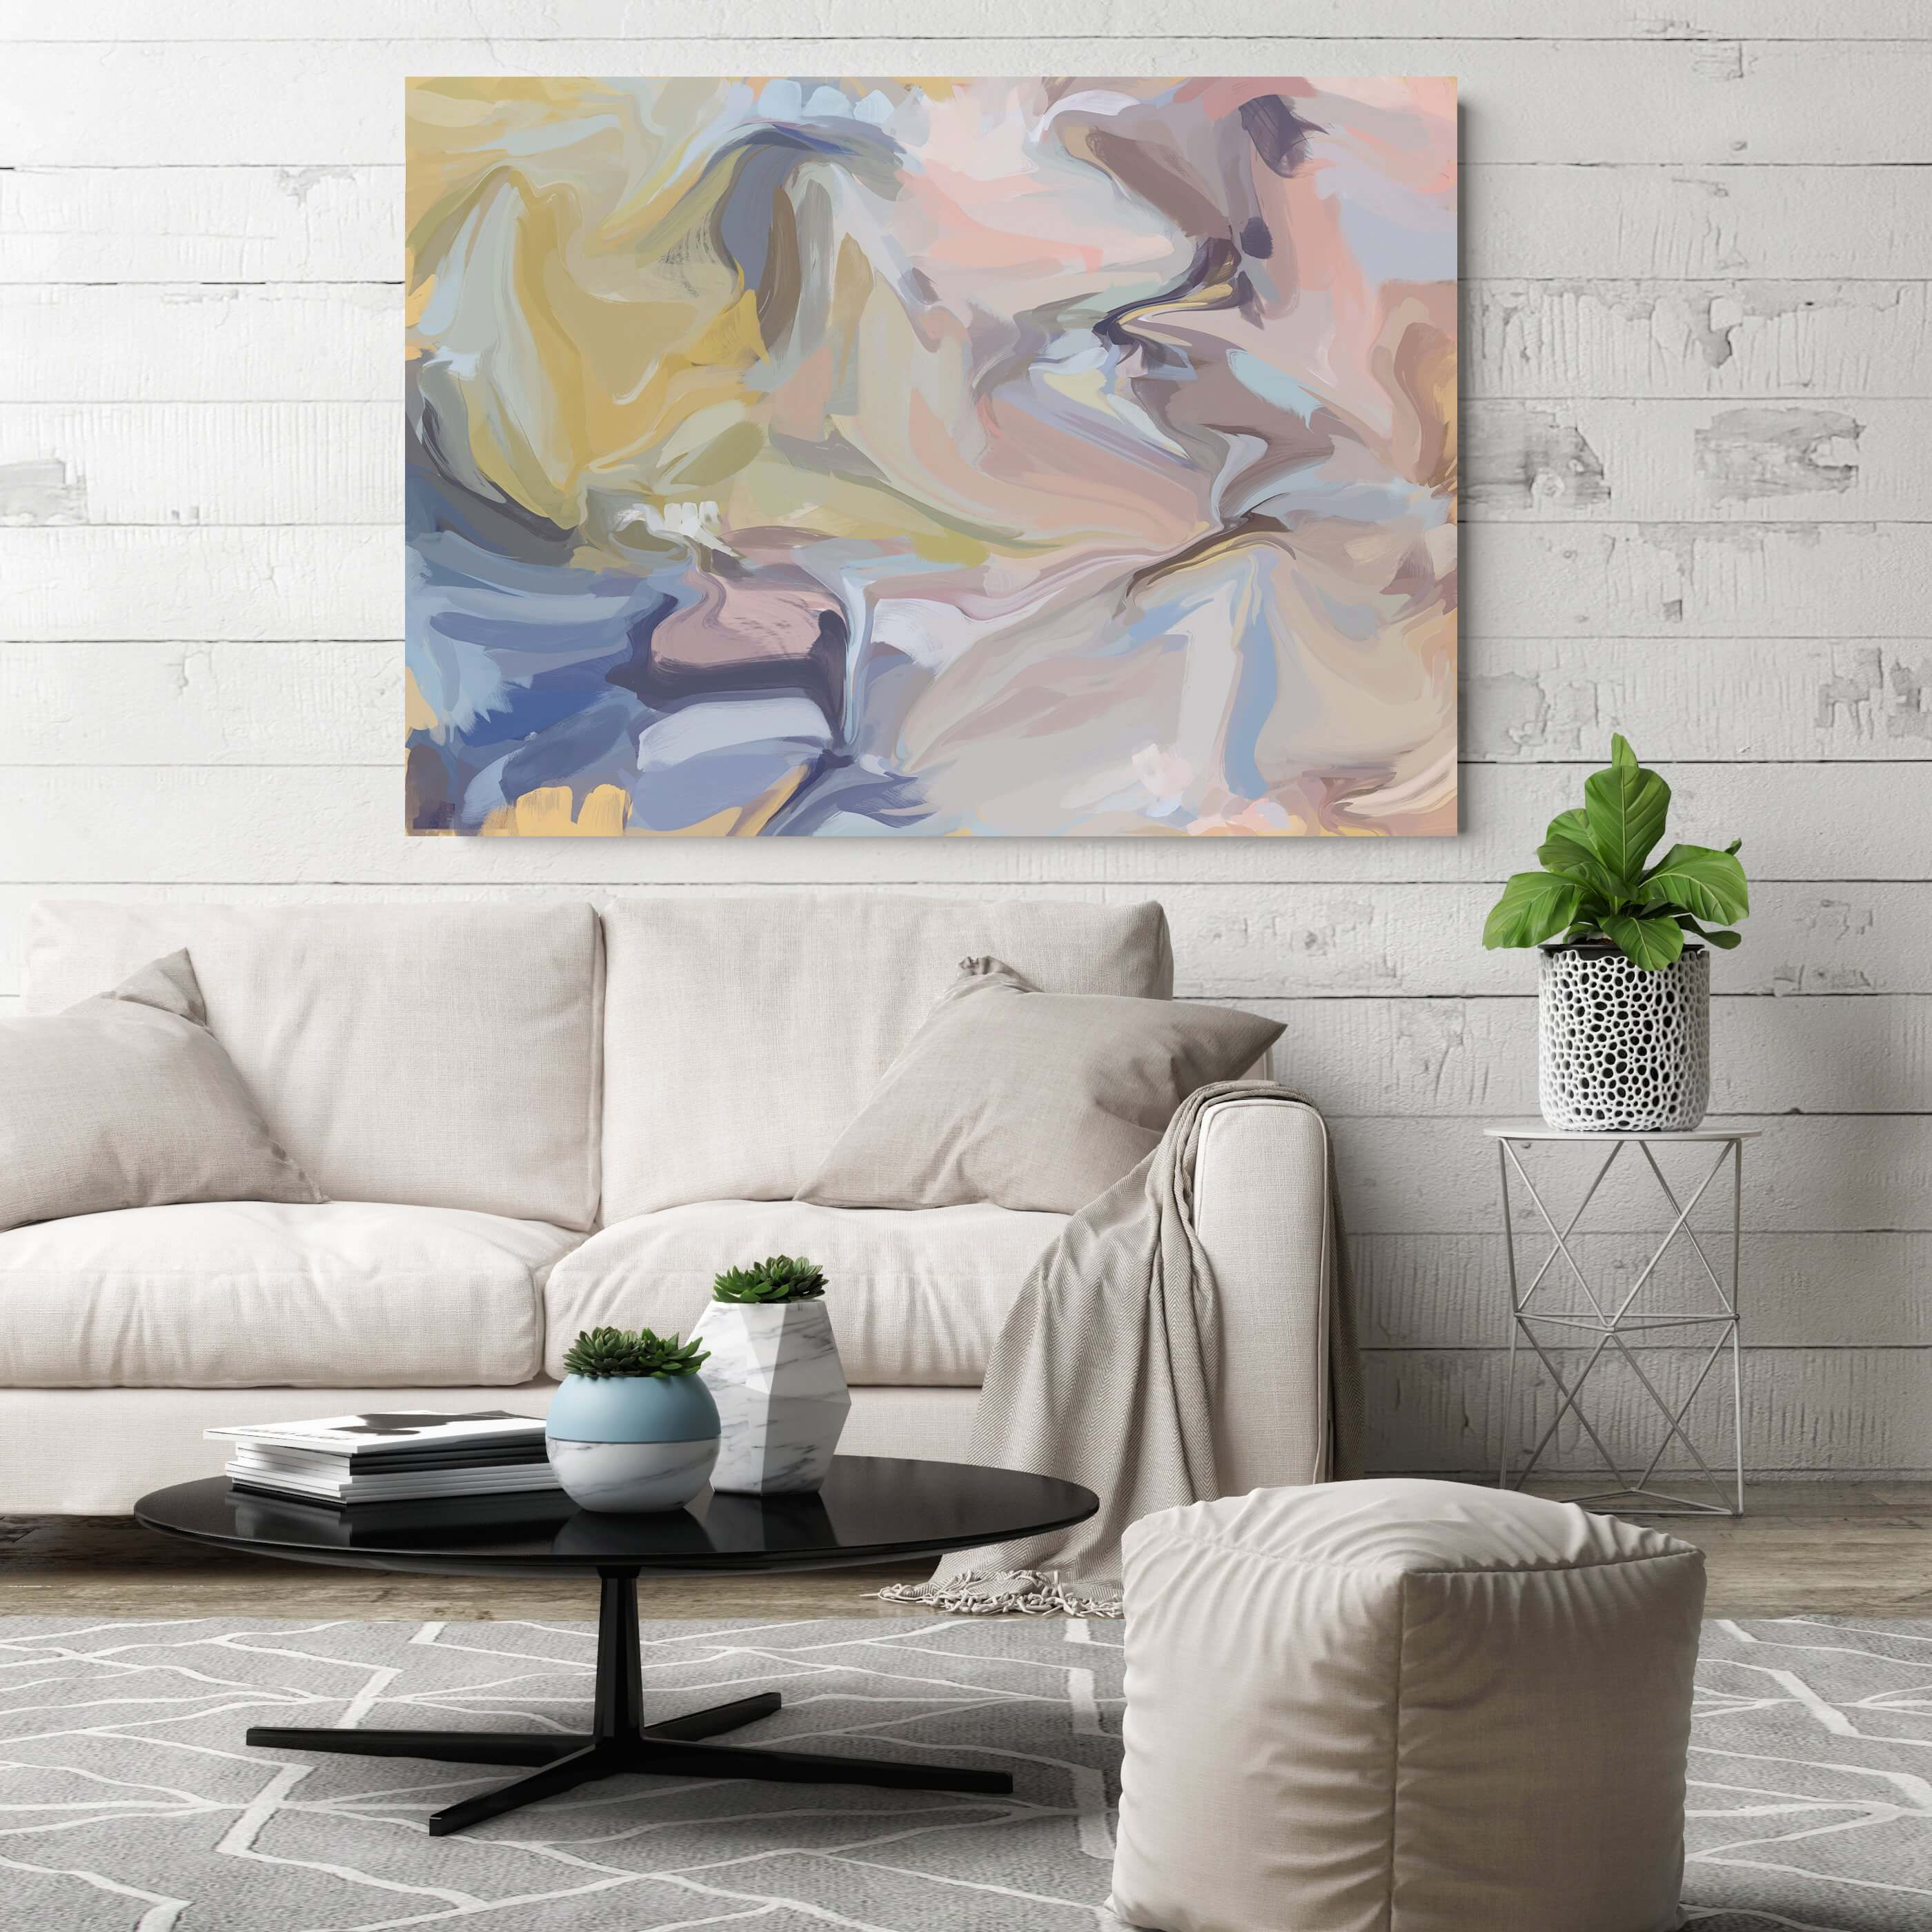 Simple Statement Art with Neutral Furniture